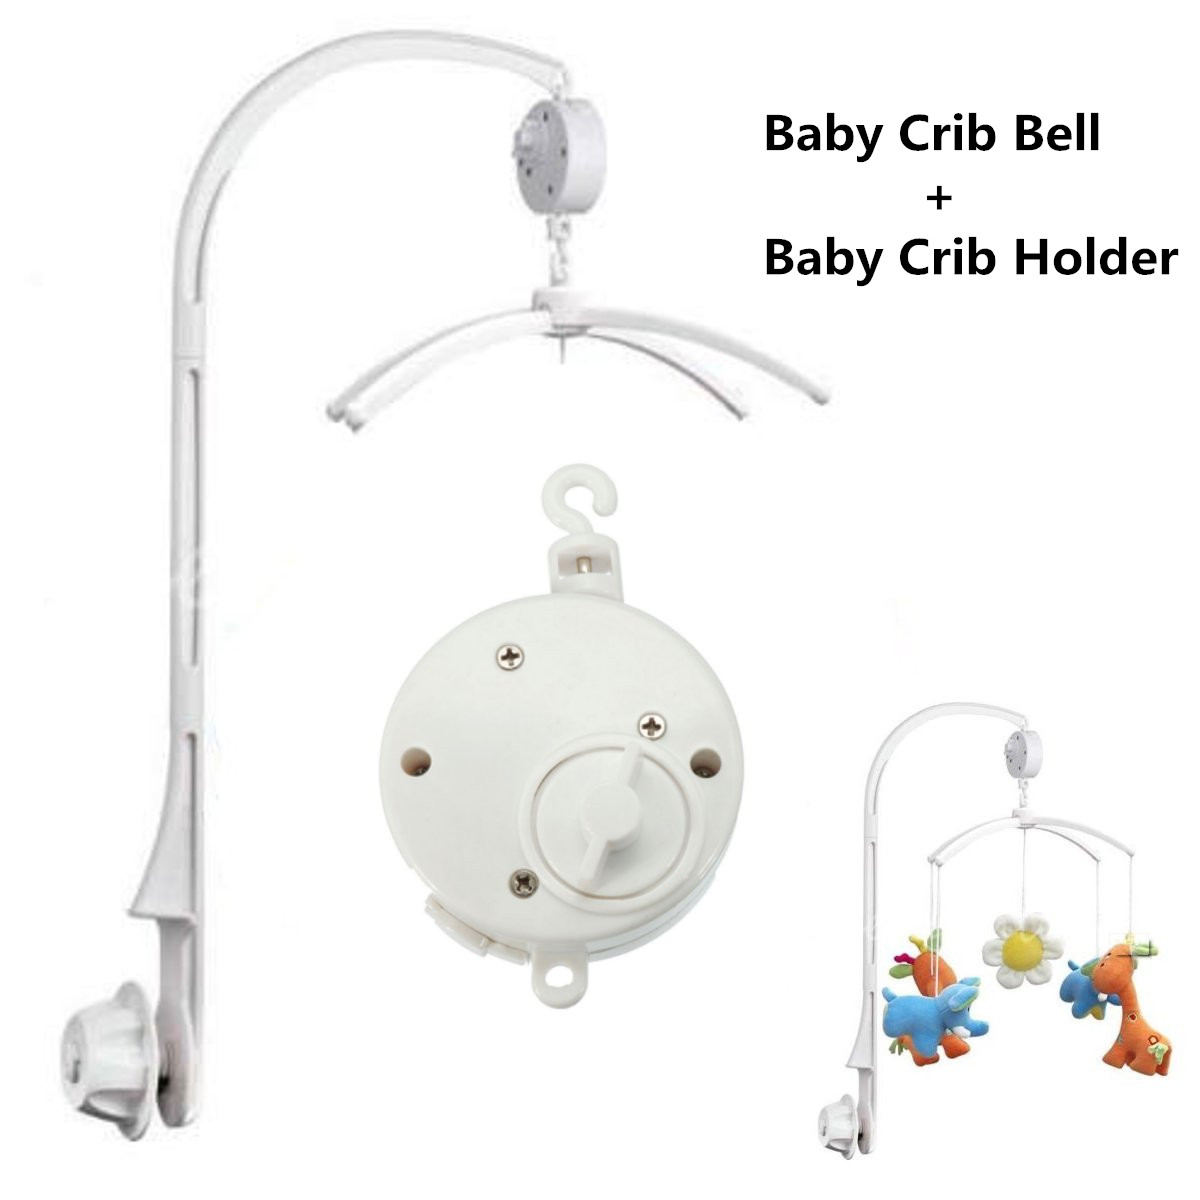 DIY White 4Pcs Baby Infant Crib Mobile Bed Bell Toy Holder Arm Bracket + Wind-up Music Box by